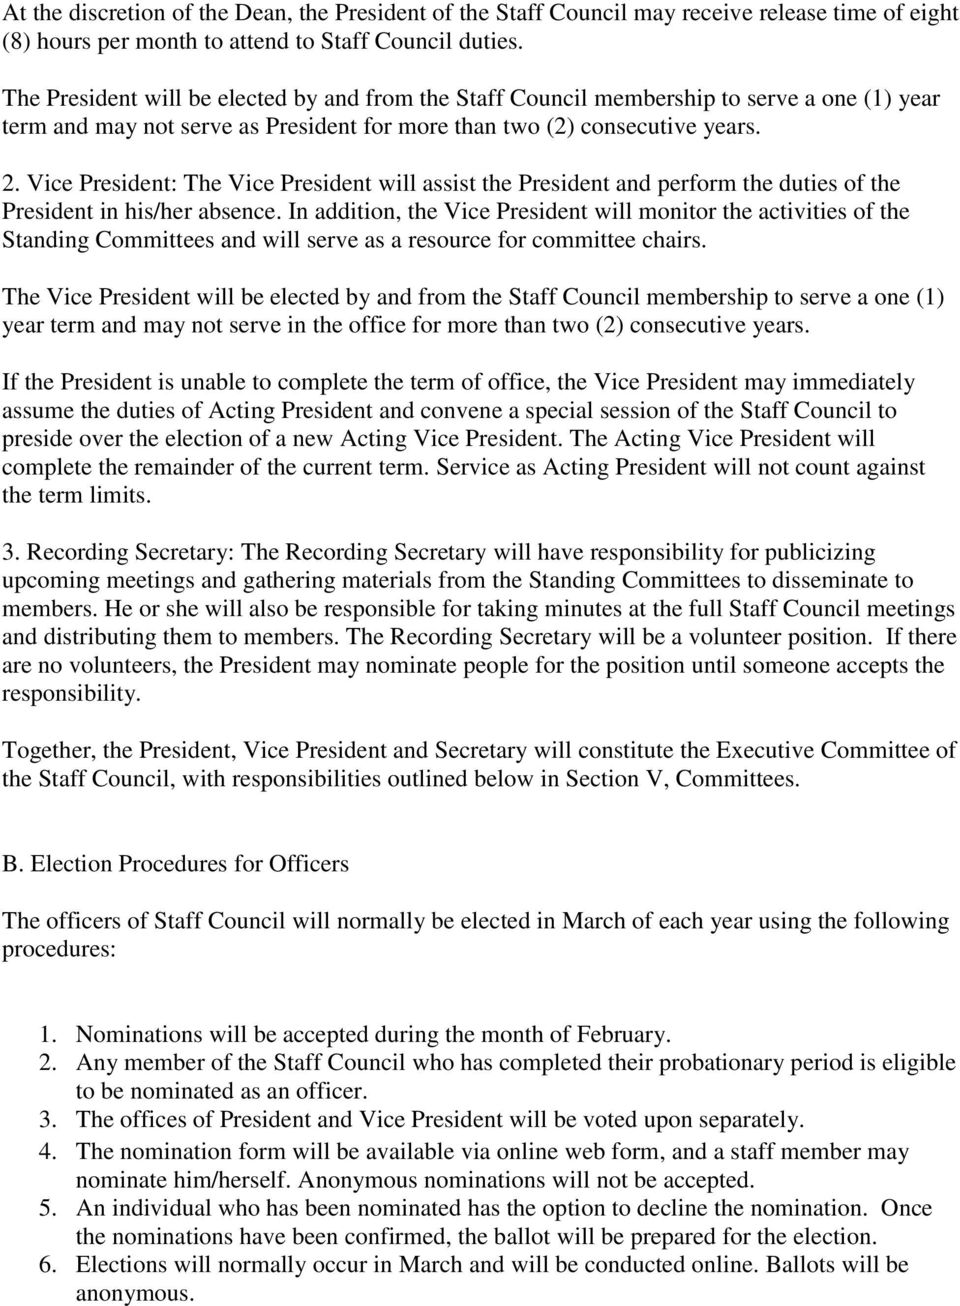 Vice President: The Vice President will assist the President and perform the duties of the President in his/her absence.